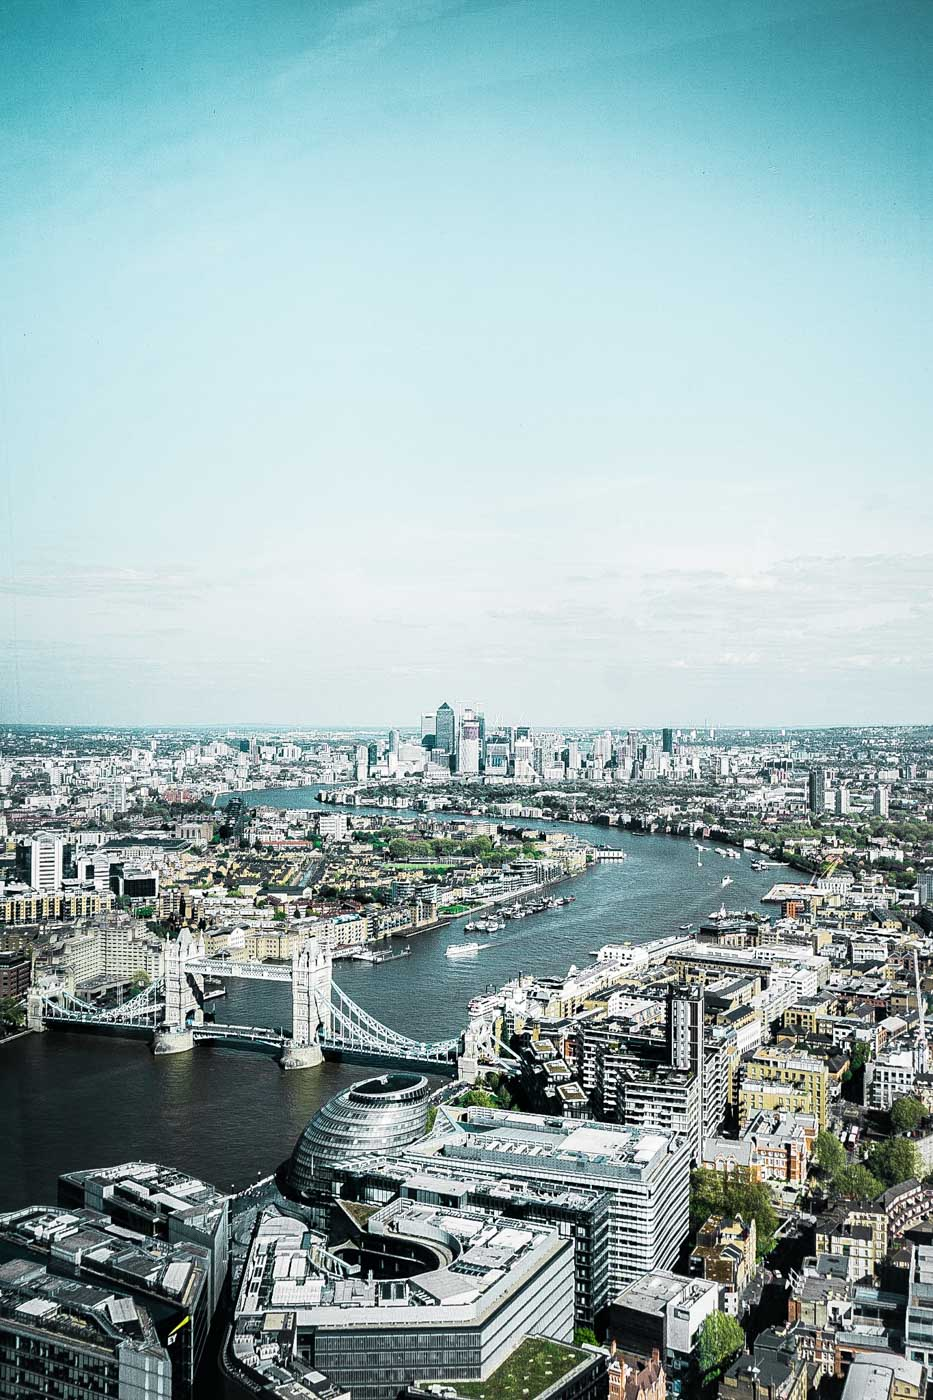 View from the Shangri La at The Shard